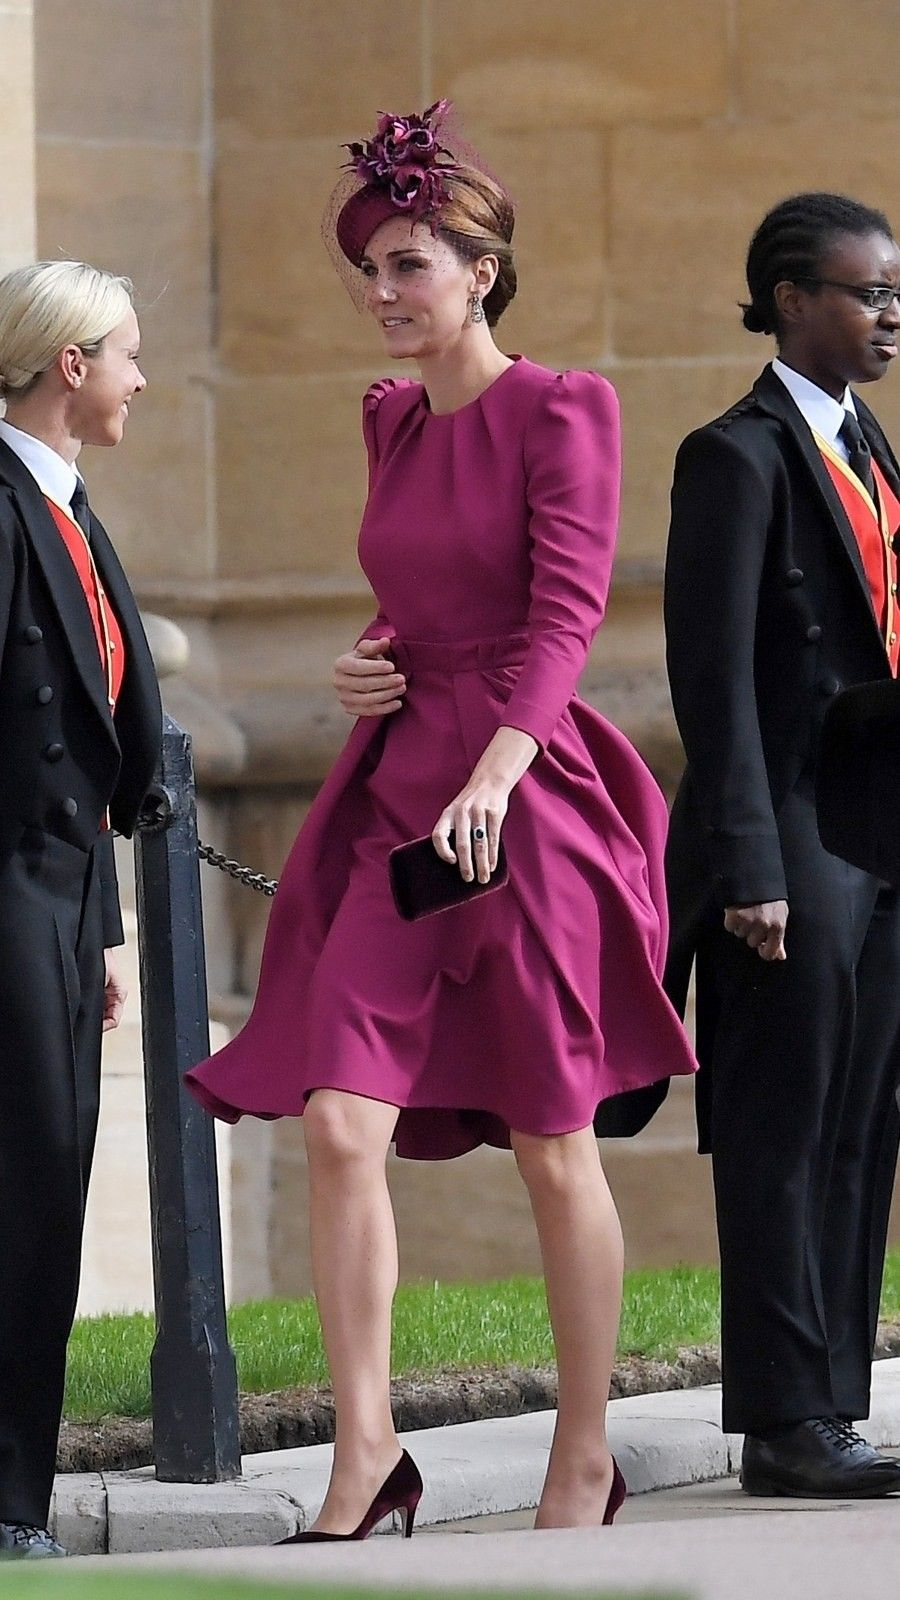 Duchess Of Cambridge At The Wedding Of Princess Eugenie And Jack Brooksbank Oct 21 Royal Wedding Outfits Royal Wedding Guests Outfits Kate Middleton Wedding